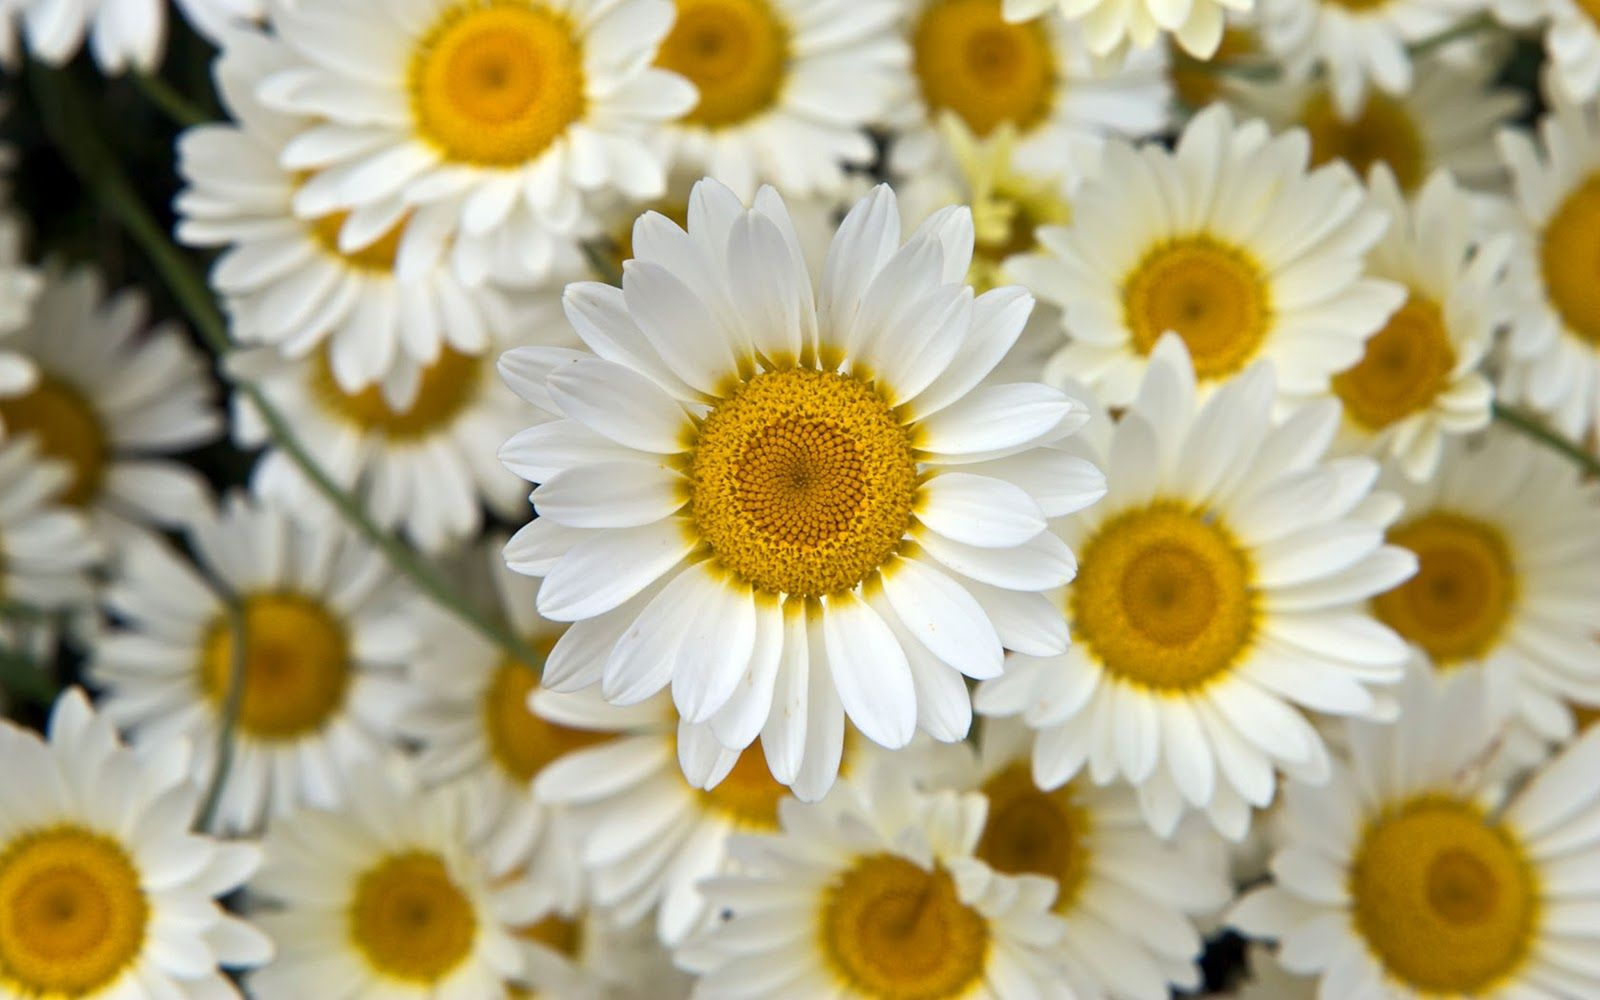 100 types of the most beautiful white flowers for your garden types of white flowers white is taken into consideration as a binding and mirroring shade as it reflects all the lights as well as goes well with any type mightylinksfo